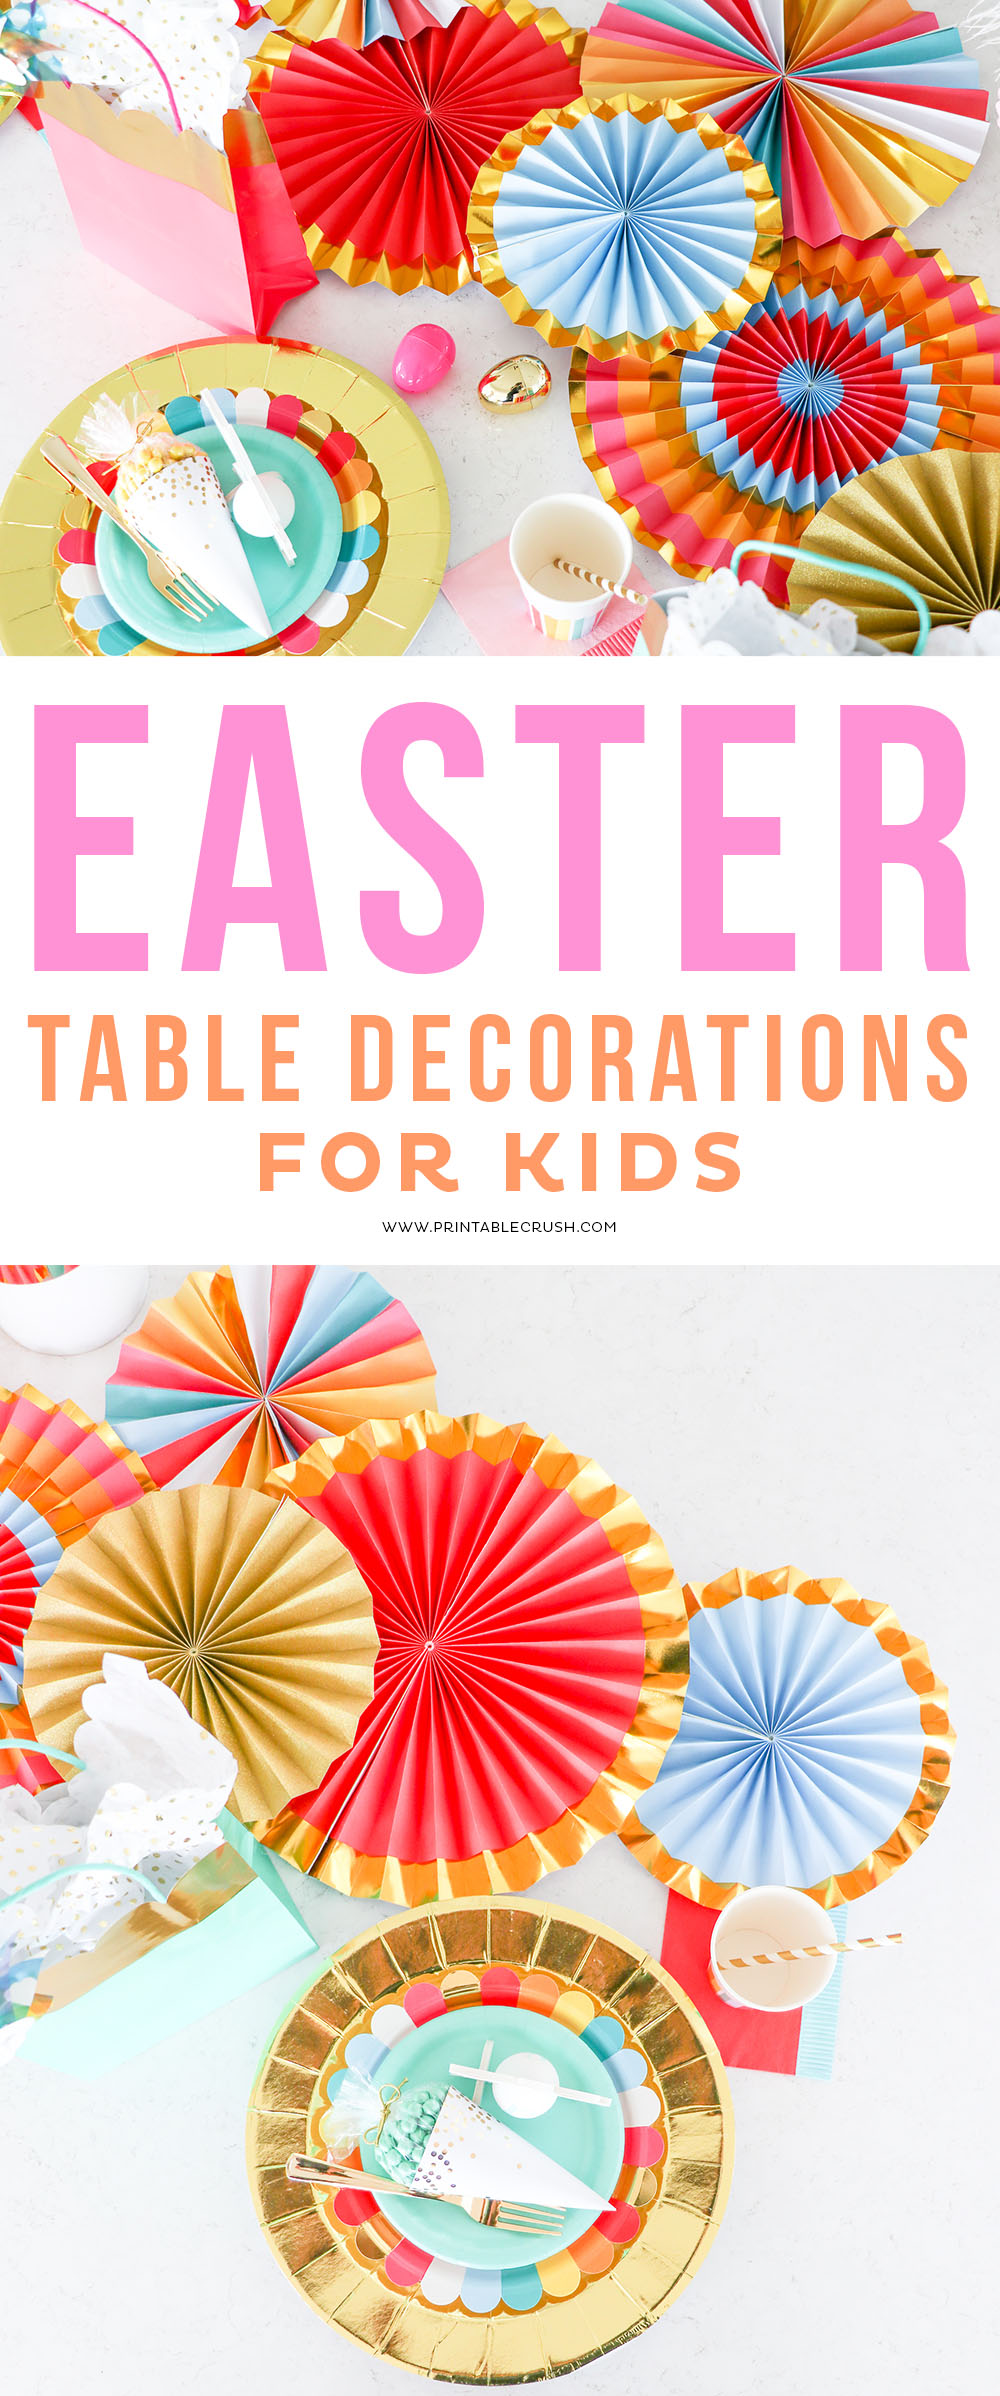 Easter Table Decorations for a Kiddie Table